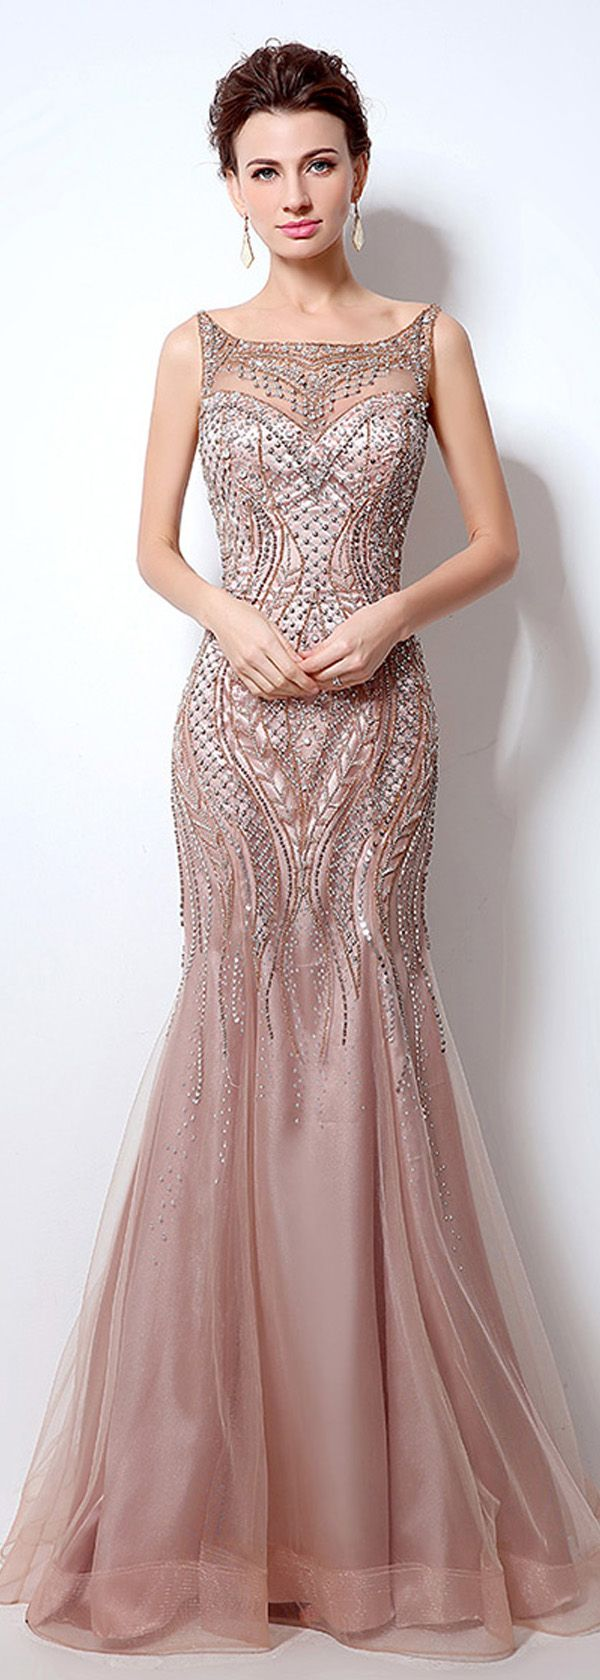 17  ideas about Mermaid Evening Gown on Pinterest - Long dresses ...